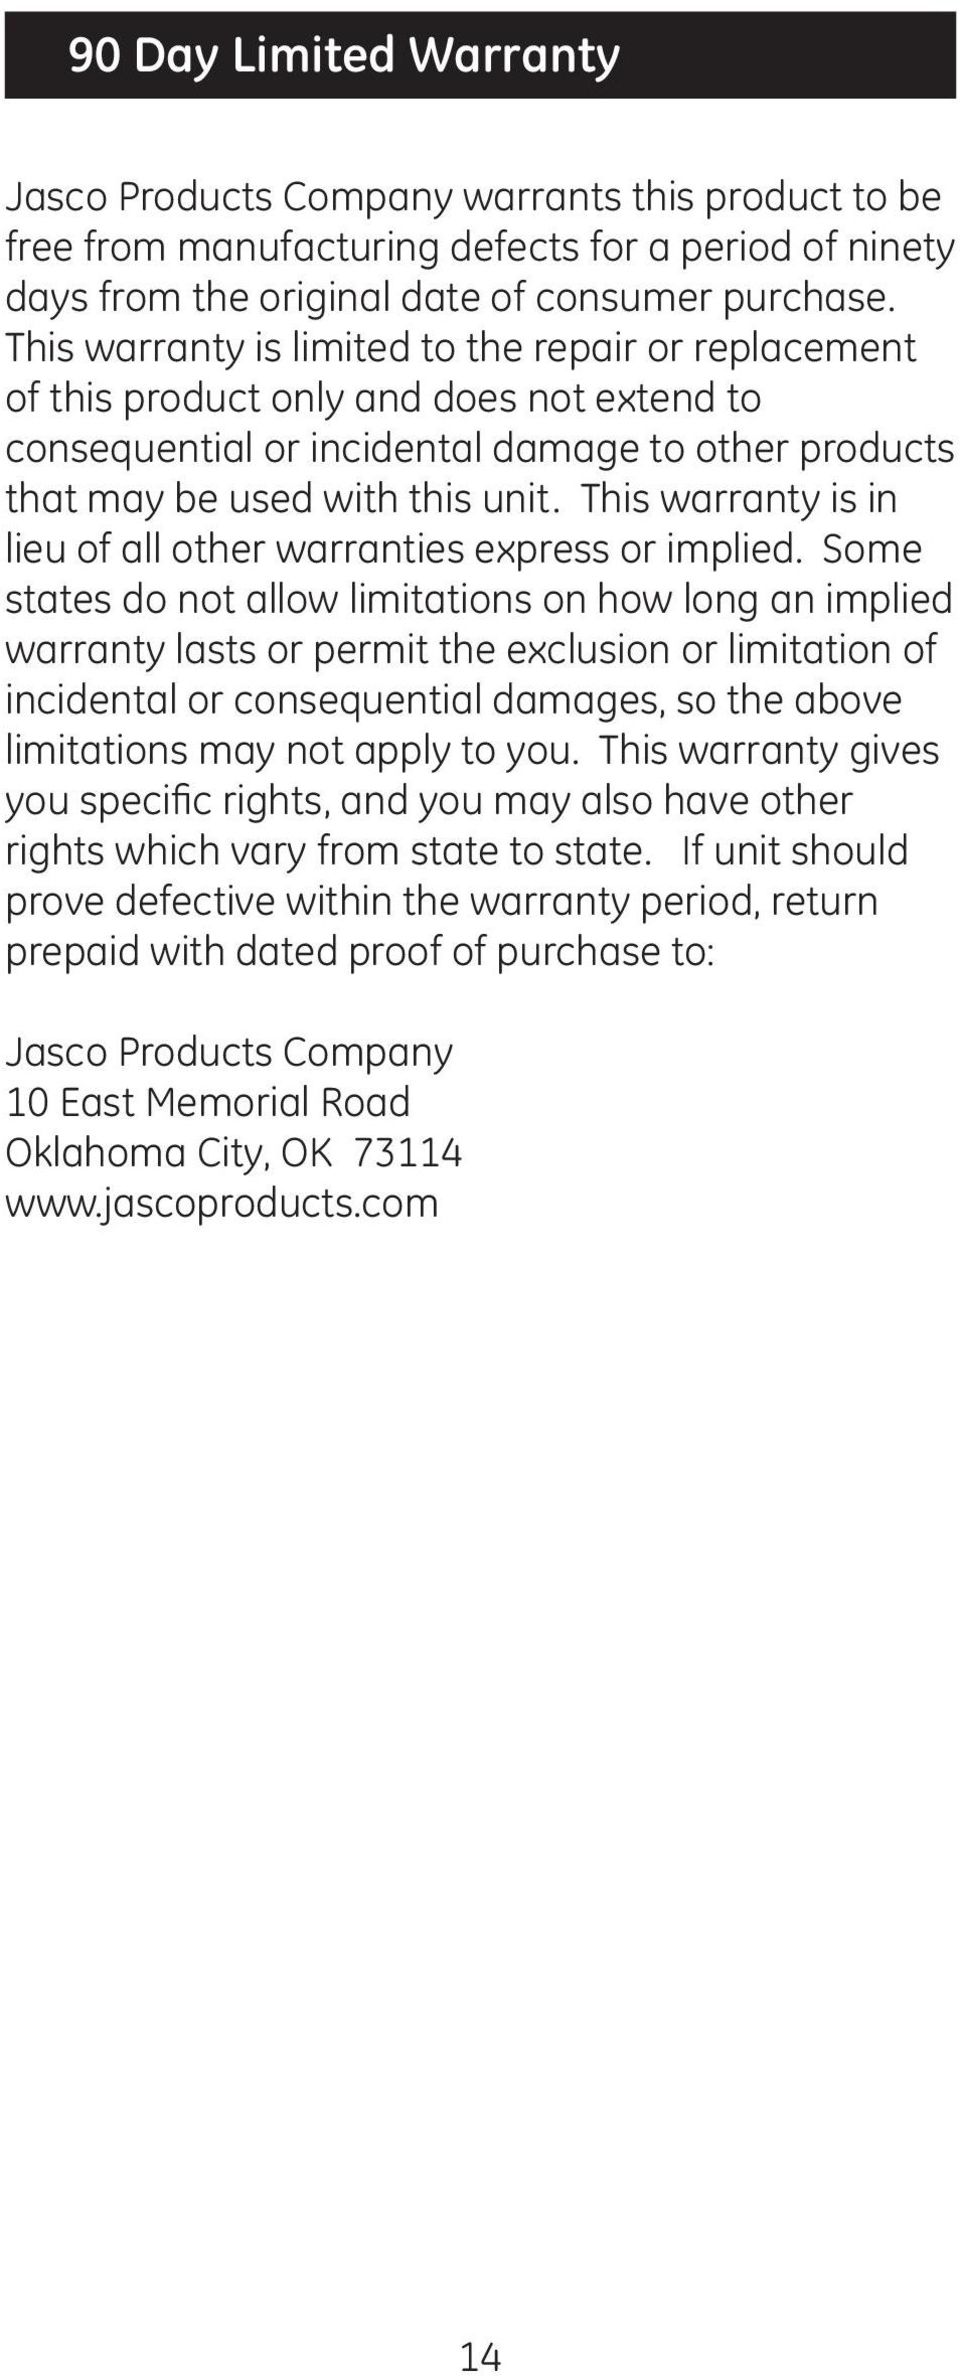 This warranty is in lieu of all other warranties express or implied.